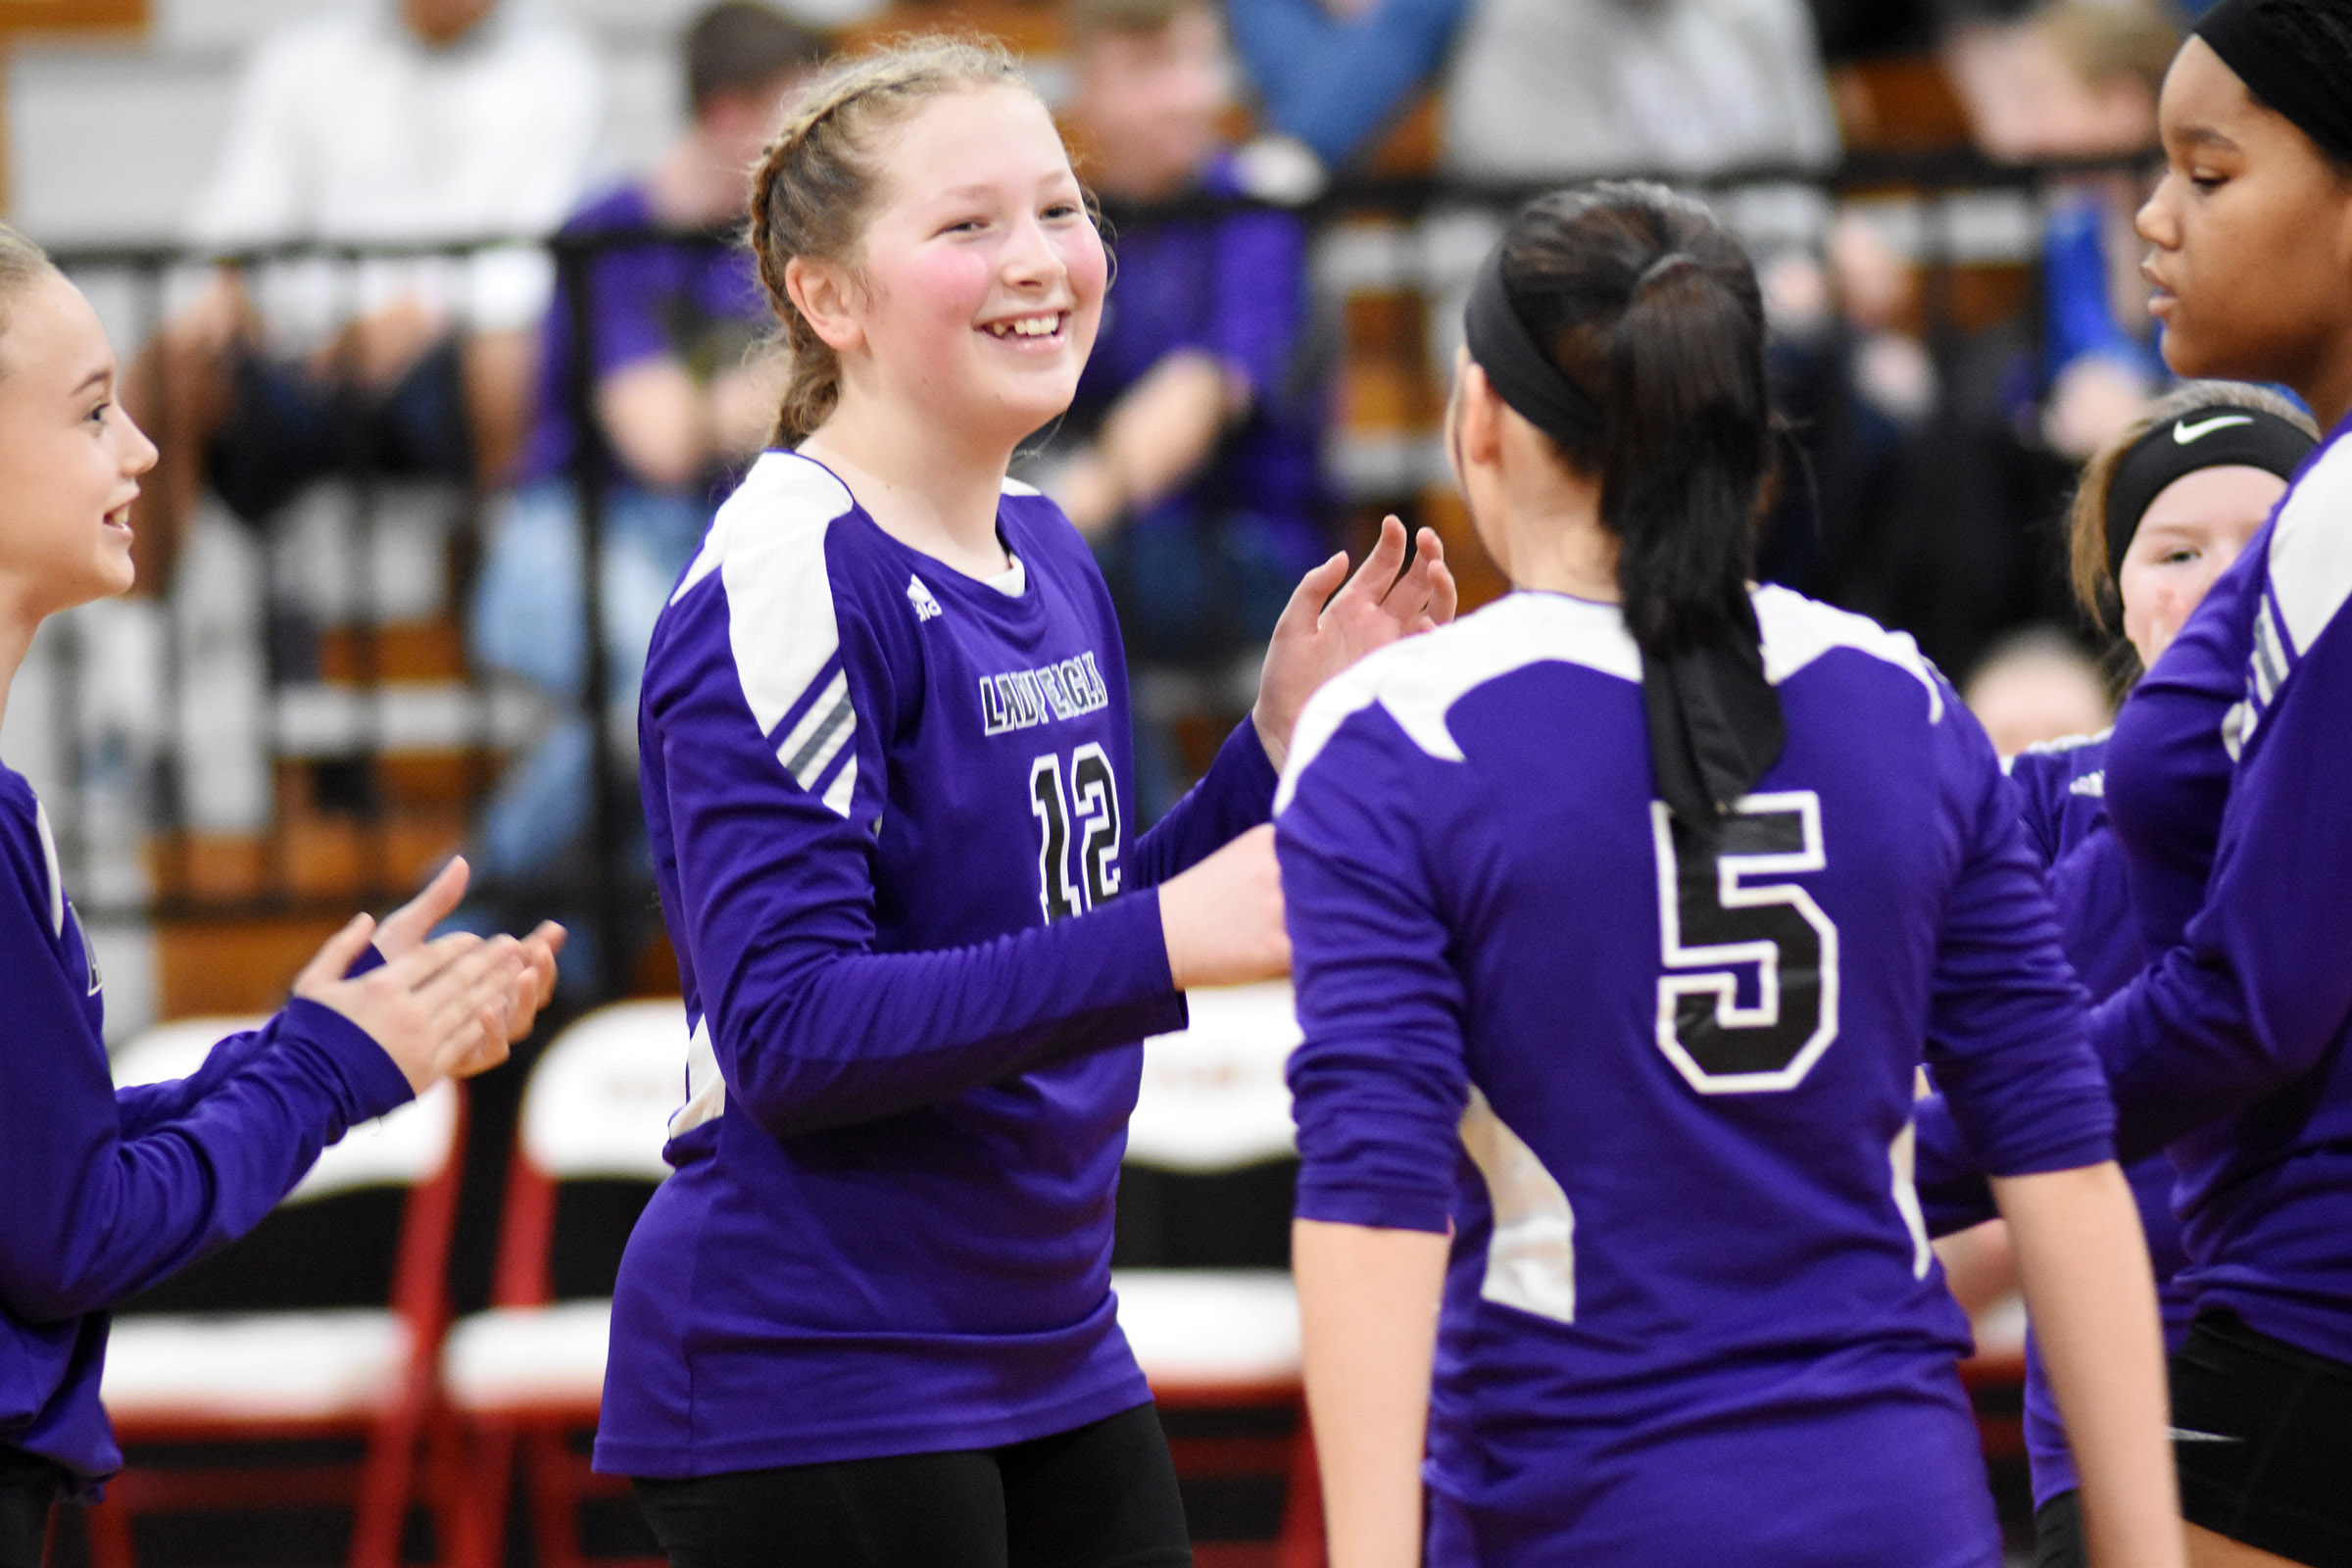 CMS sixth-grader Ava Hughes cheers with her classmates after a point.